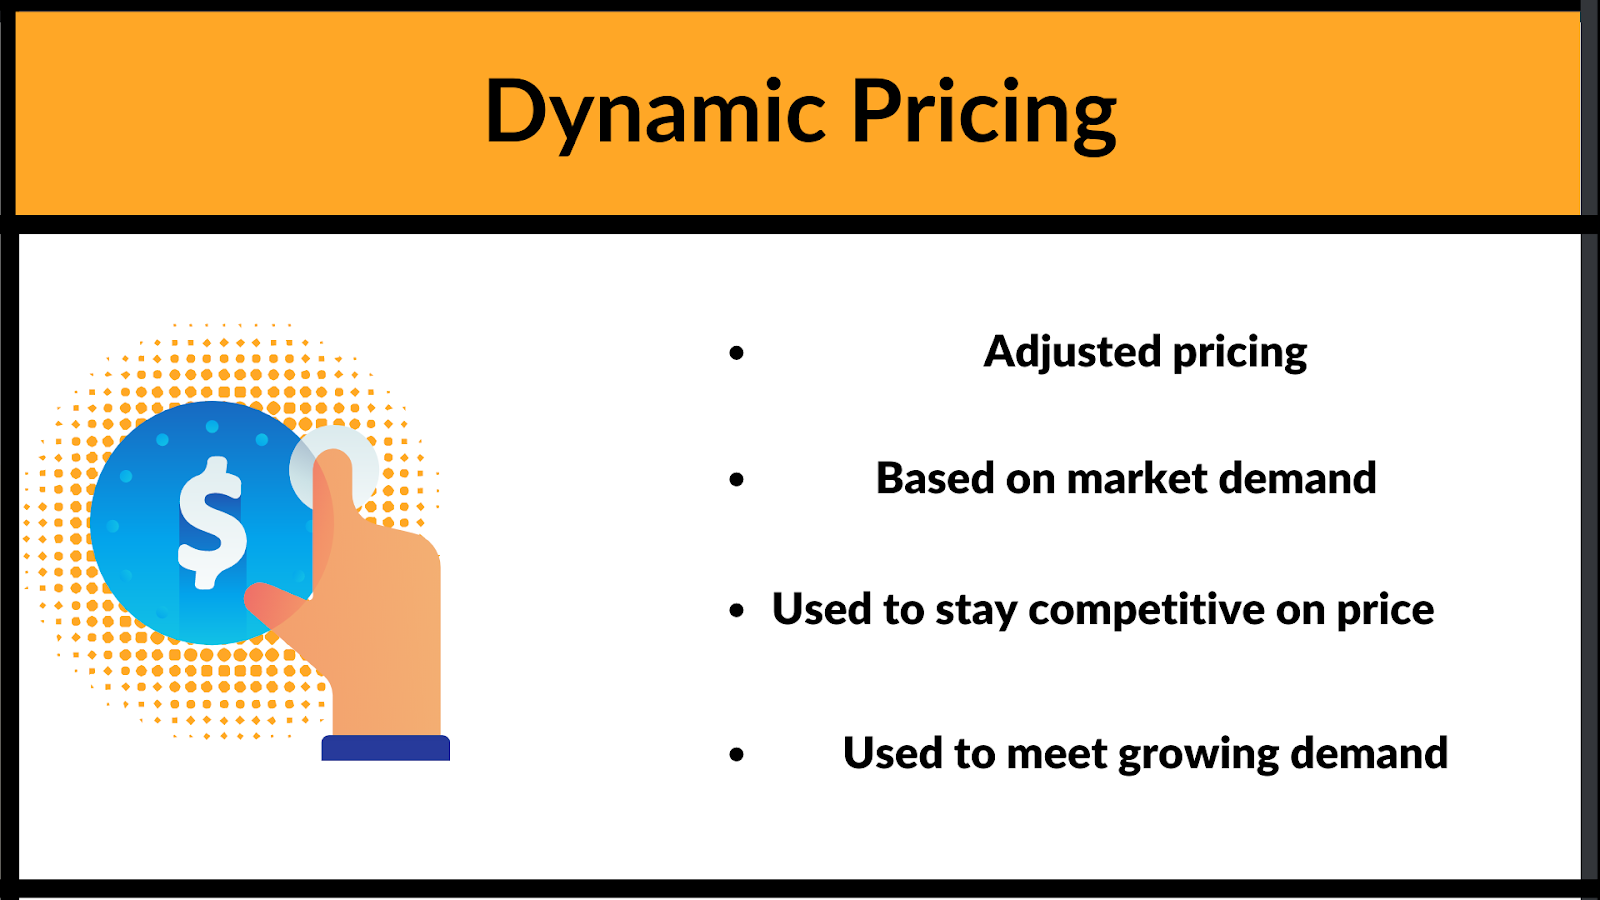 What are the elements of Dynamic pricing model